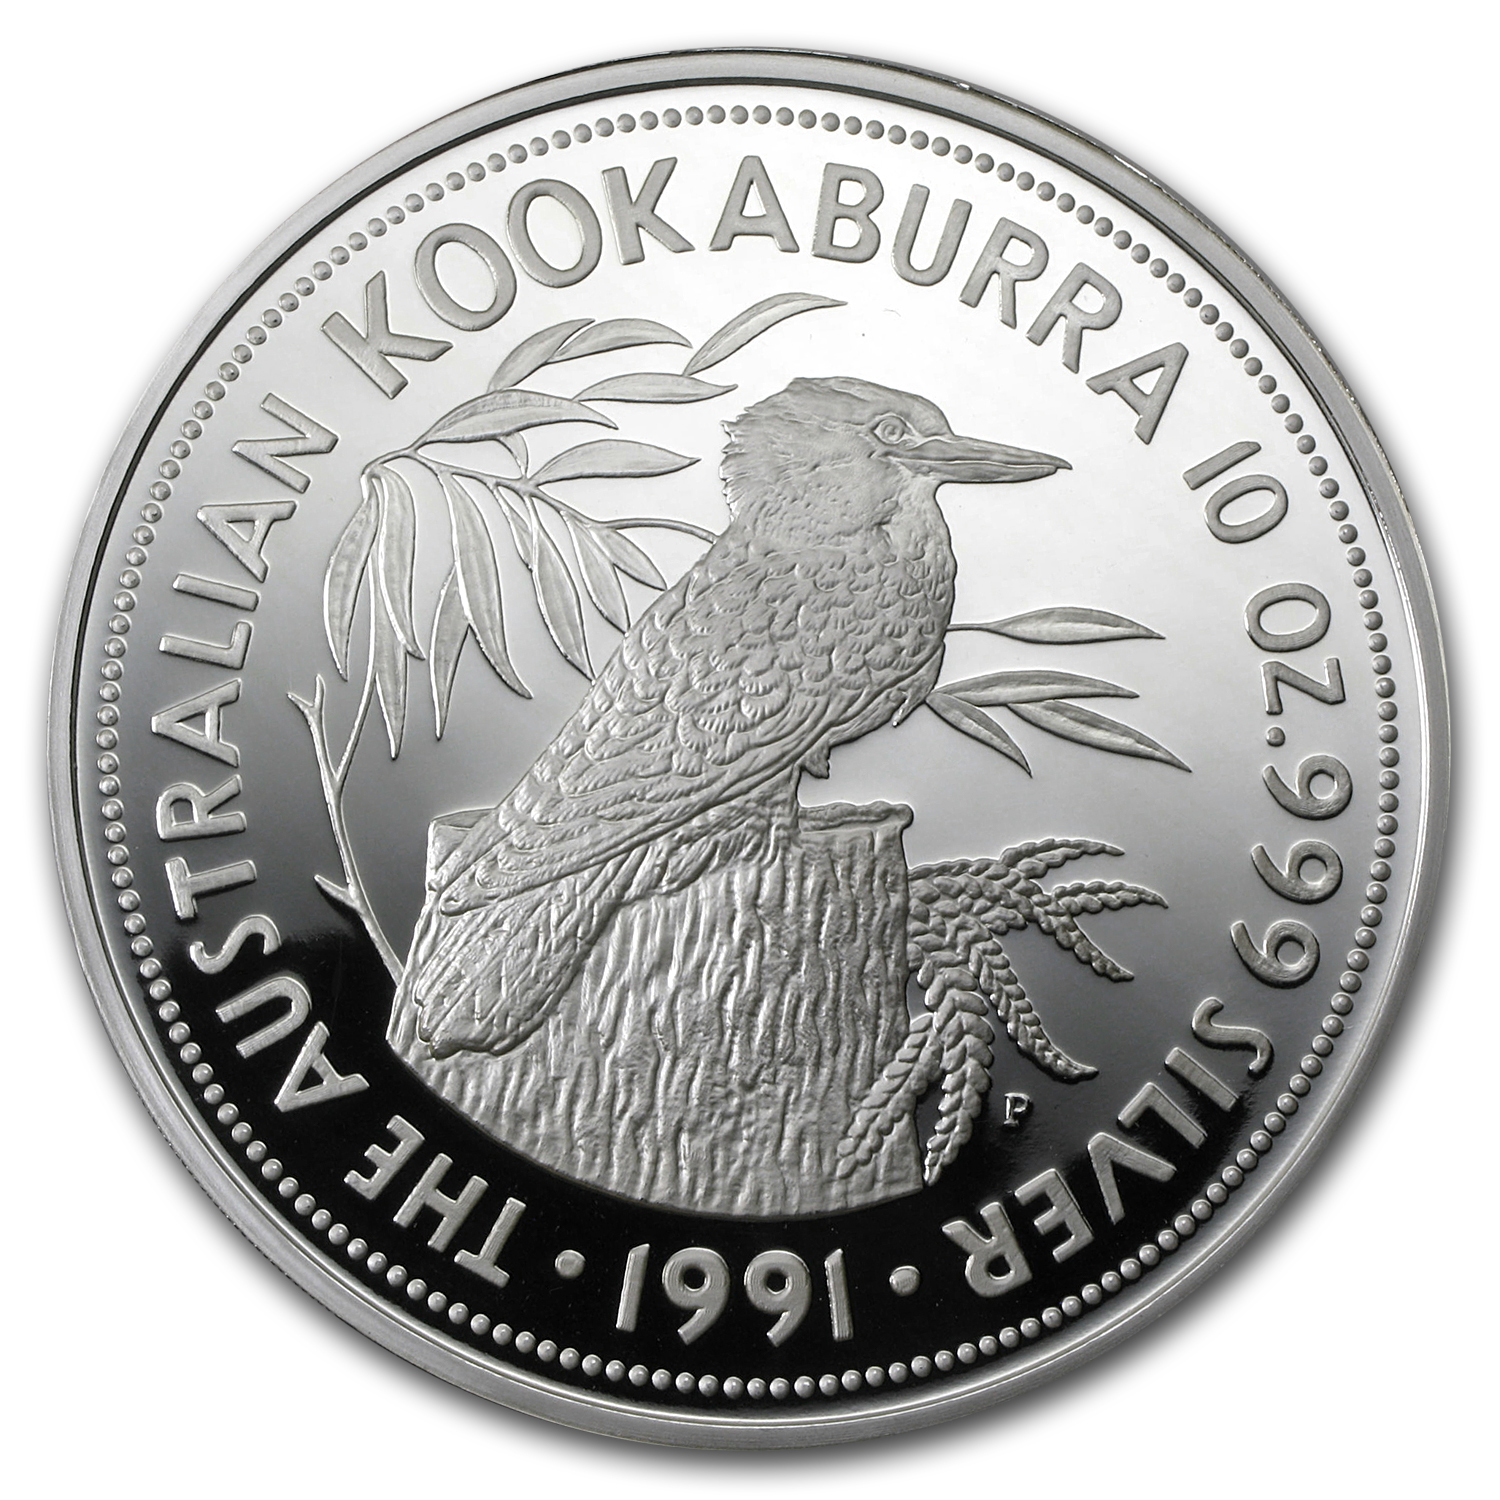 1991 10 oz Proof Silver Australian Kookaburra w/Box - No CoA